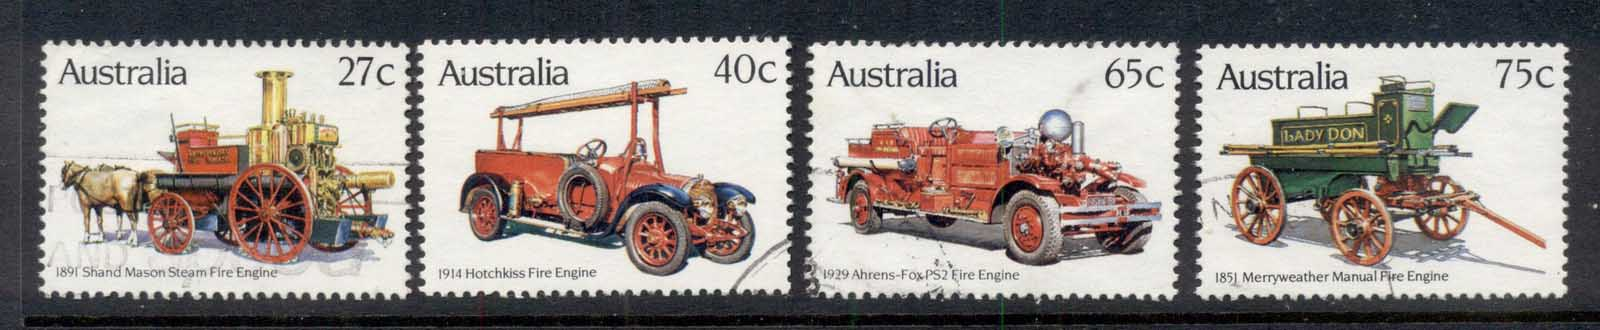 Australia 1983 Historic Fire Engines FU